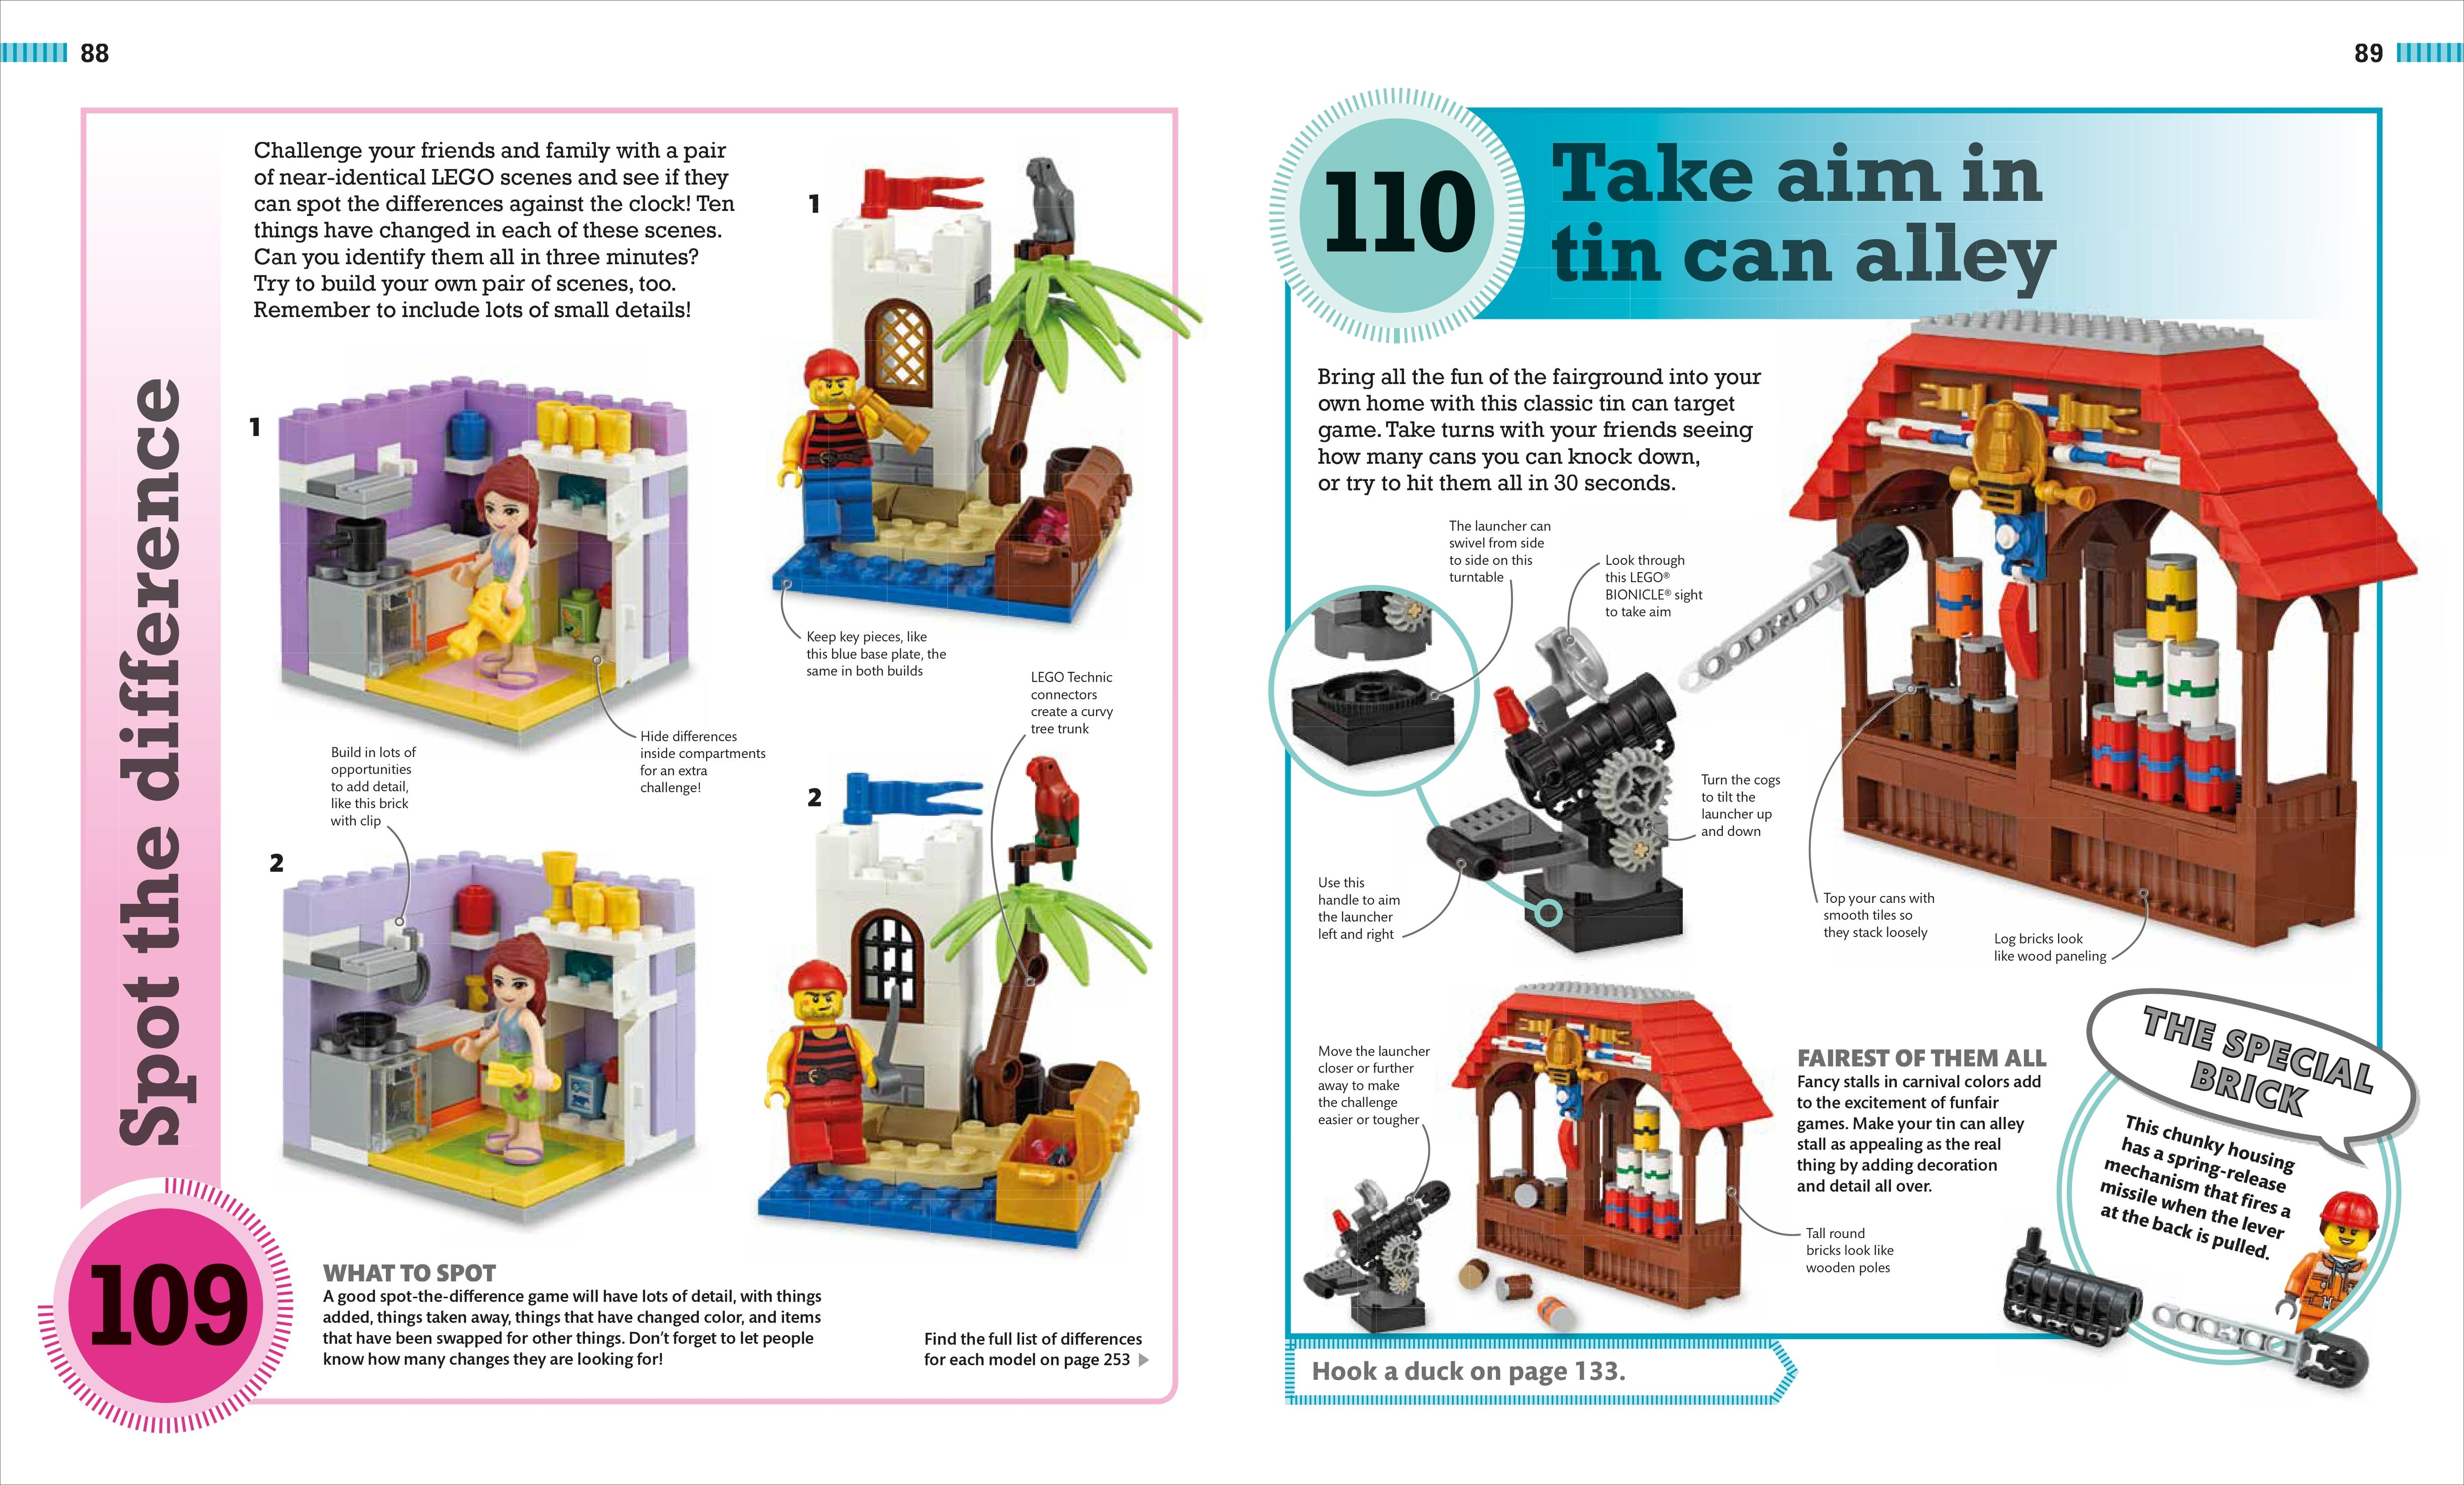 365 Things to Do with LEGO Bricks: Lego Fun Every Day of